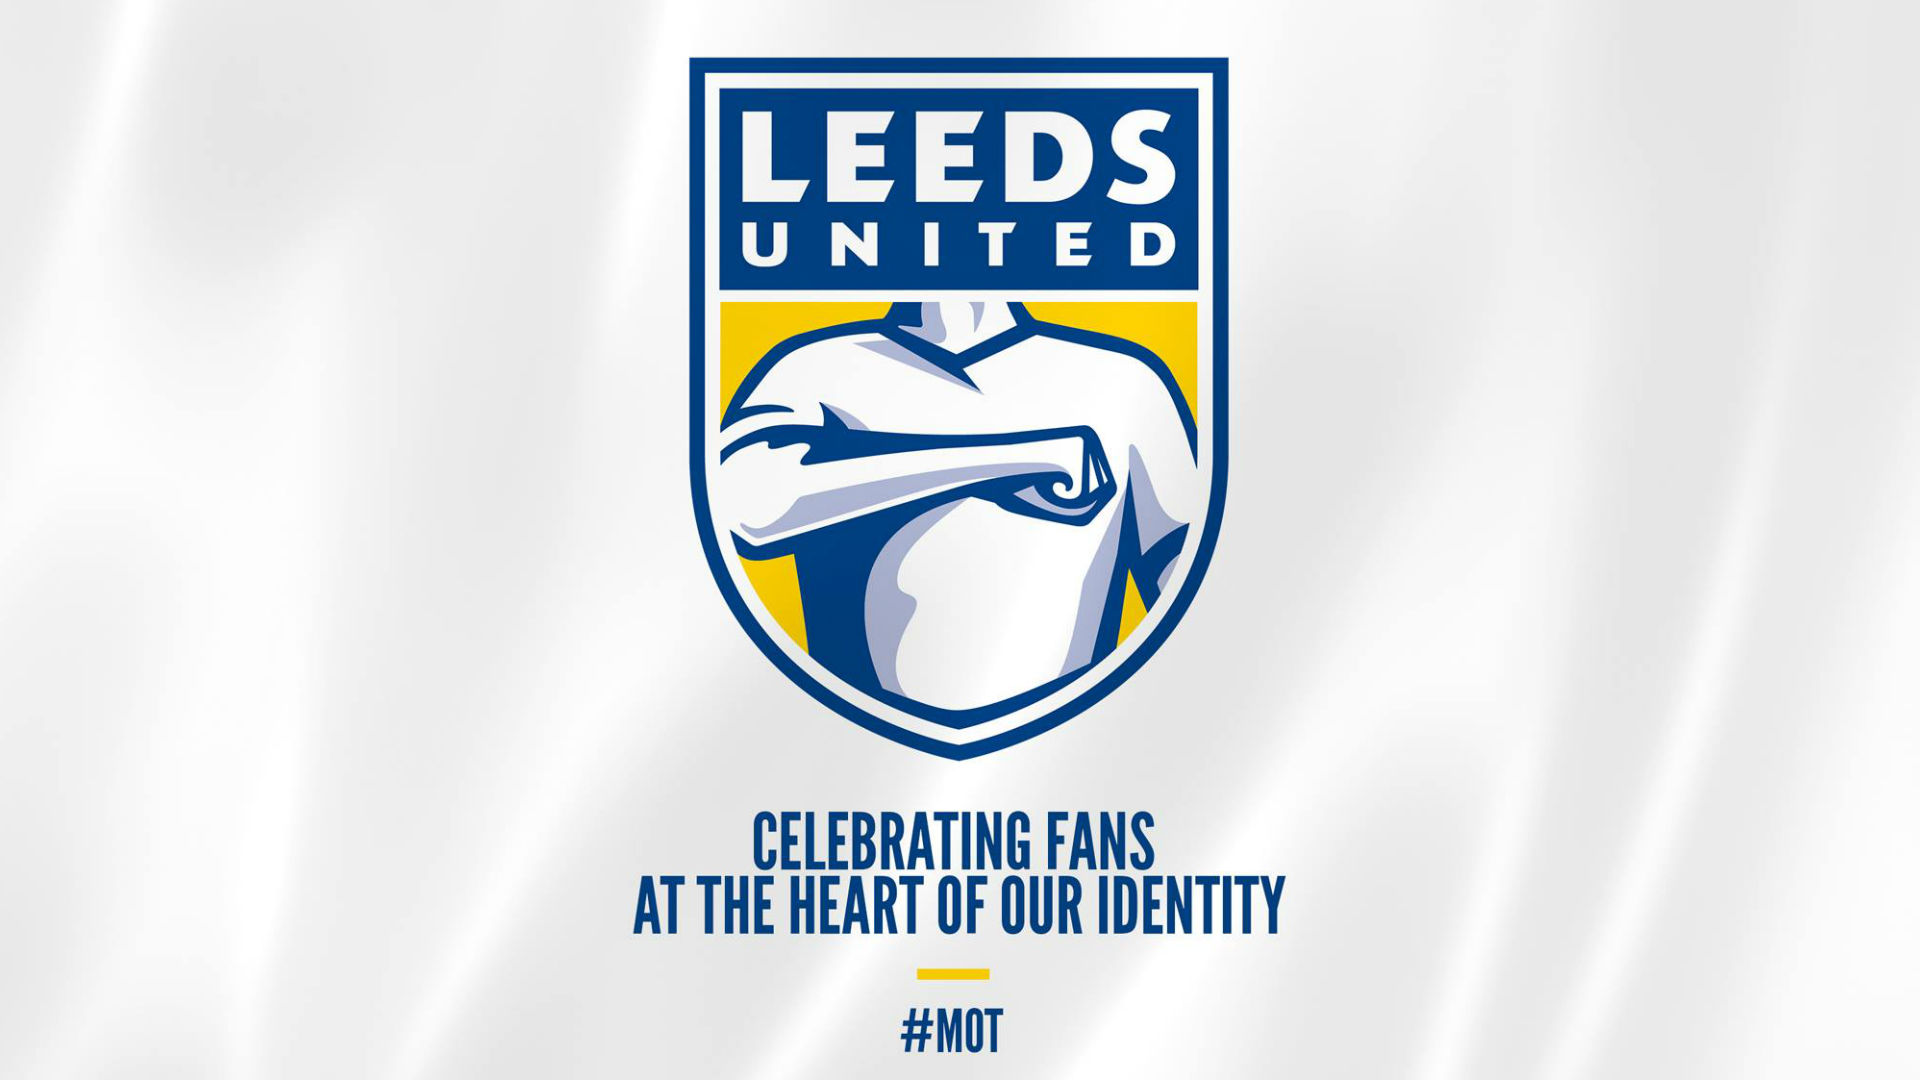 Football world reacts to Leeds United's new badge